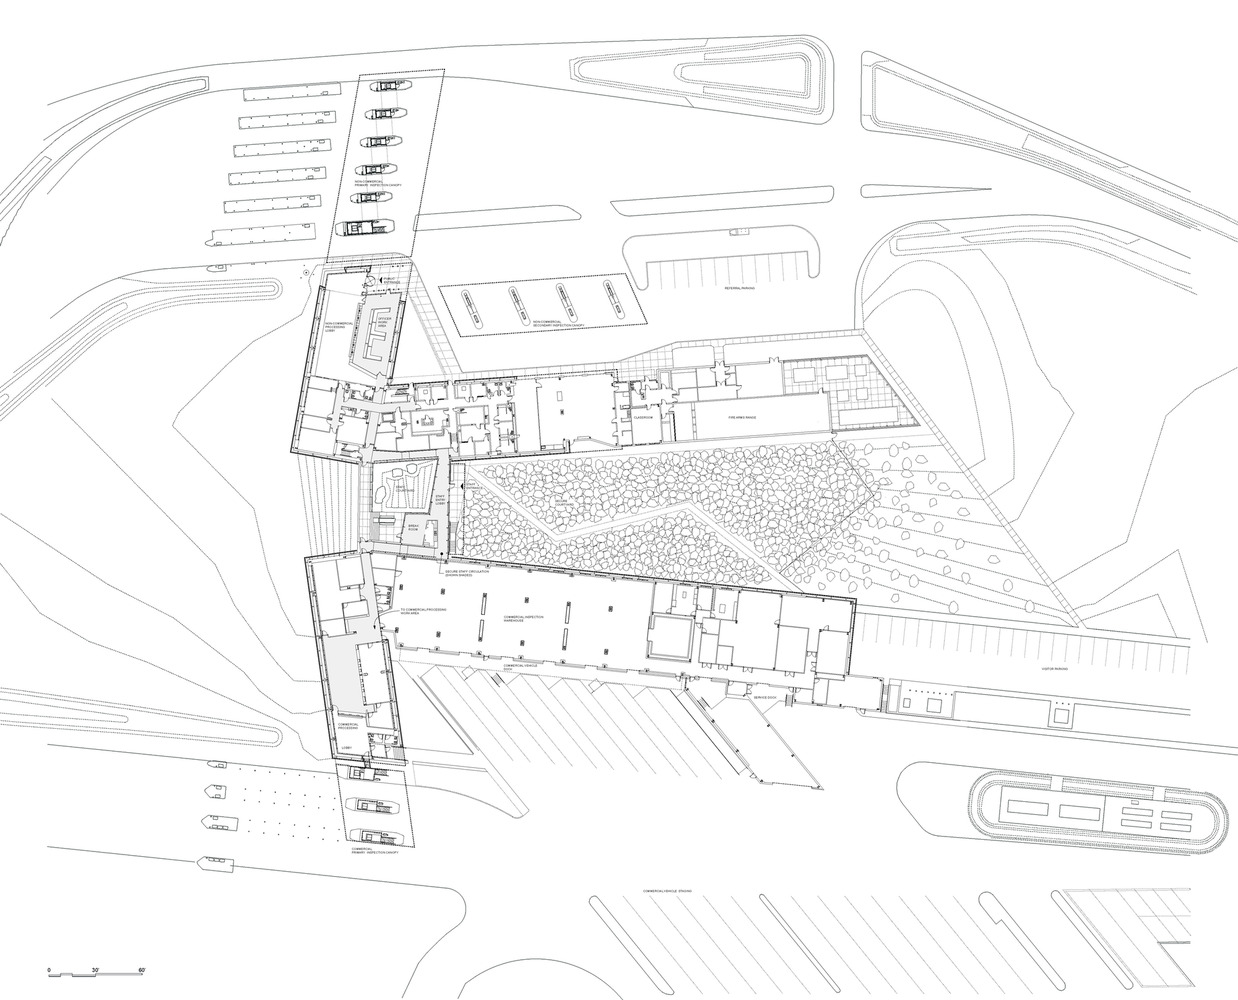 gallery of u s commercial port of entry amp border station u s commercial port of entry amp border station robert siegel architects ground floor